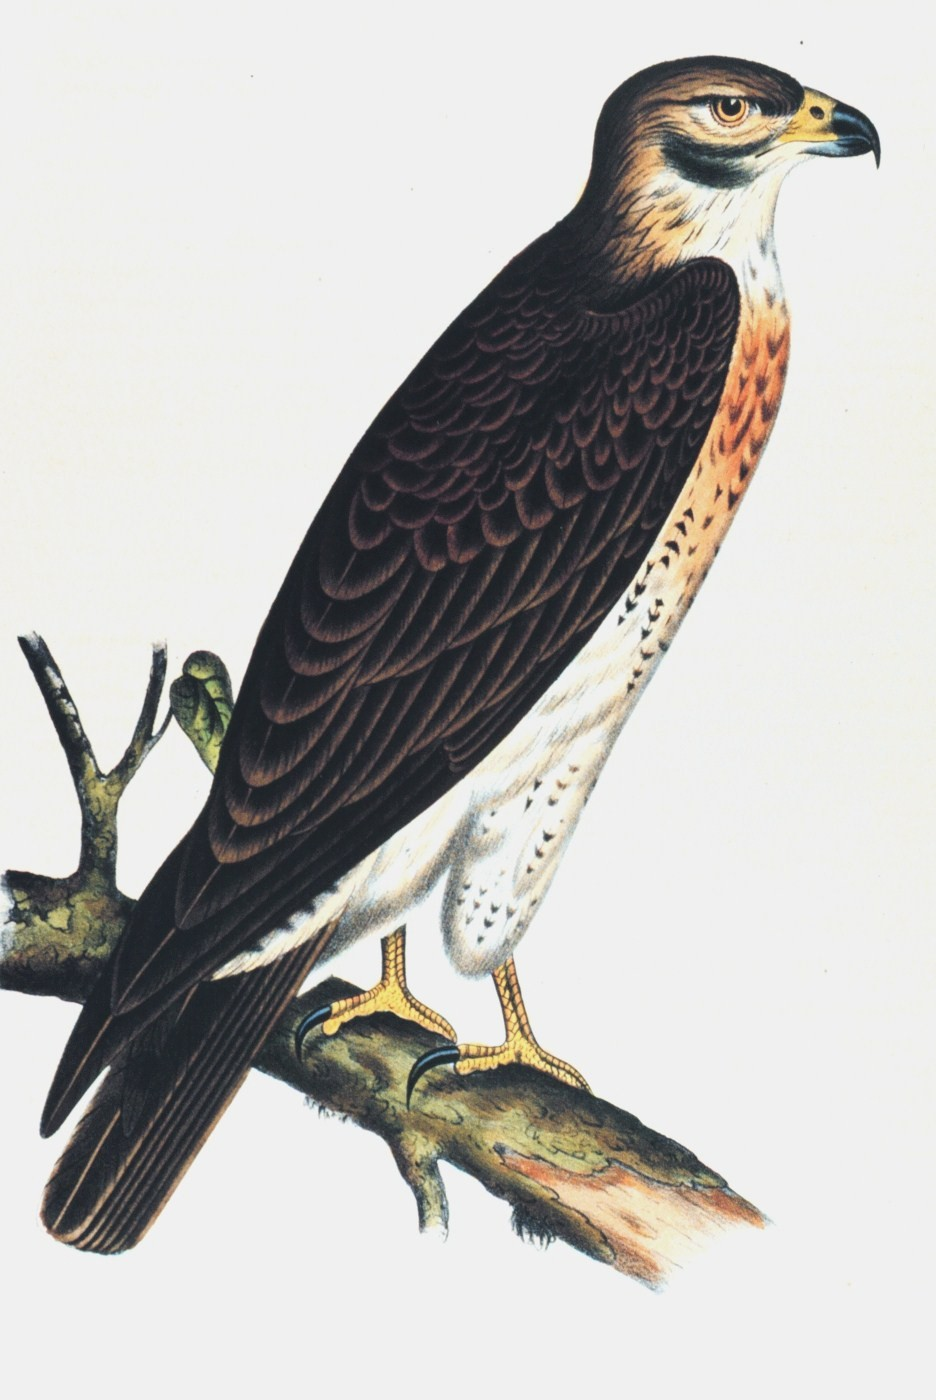 Buteo swainsoni.  Swainson's Buzzard, a variety of hawk. This image was included in:  Reports of Explorations and  Surveys ....  Volume X. 1859.  Plate XII.  P. 16 of U. S. Pacific Railroad Explorations and Surveys 38th,39th, 41st Parallels. Library Cal